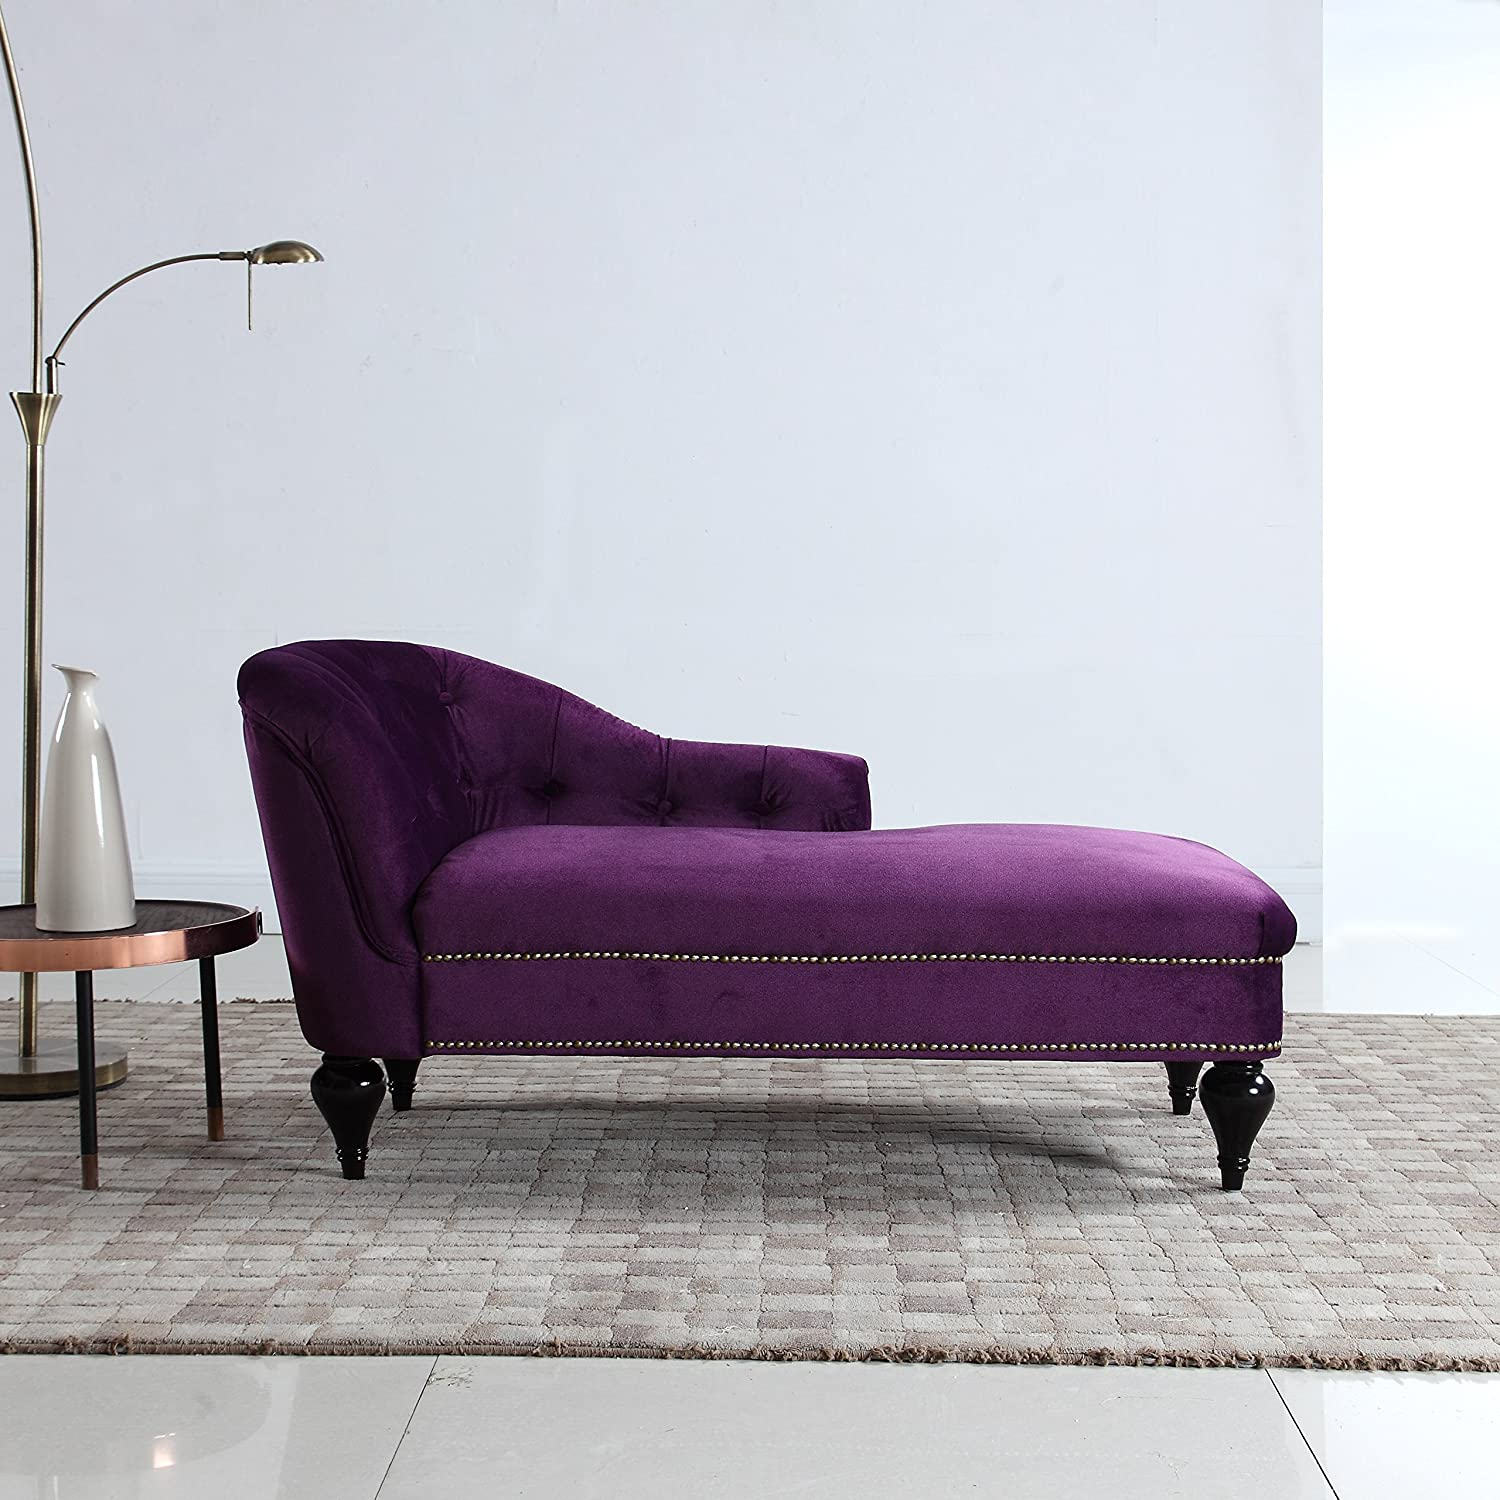 Divano Roma Furniture Kids Chaise Lounge Indoor Chair Tufted Velvet Fabric, Modern Long Kid Size Lounger for Office or Living Room (Dark Purple)